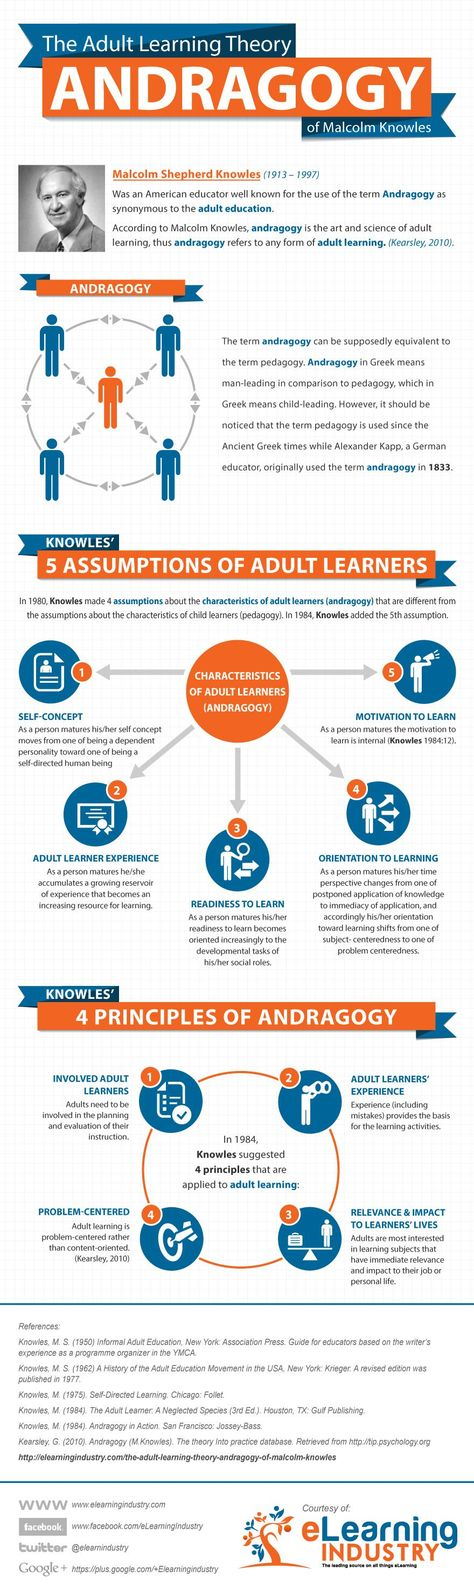 9 Tips To Apply Adult Learning Theory to eLearning